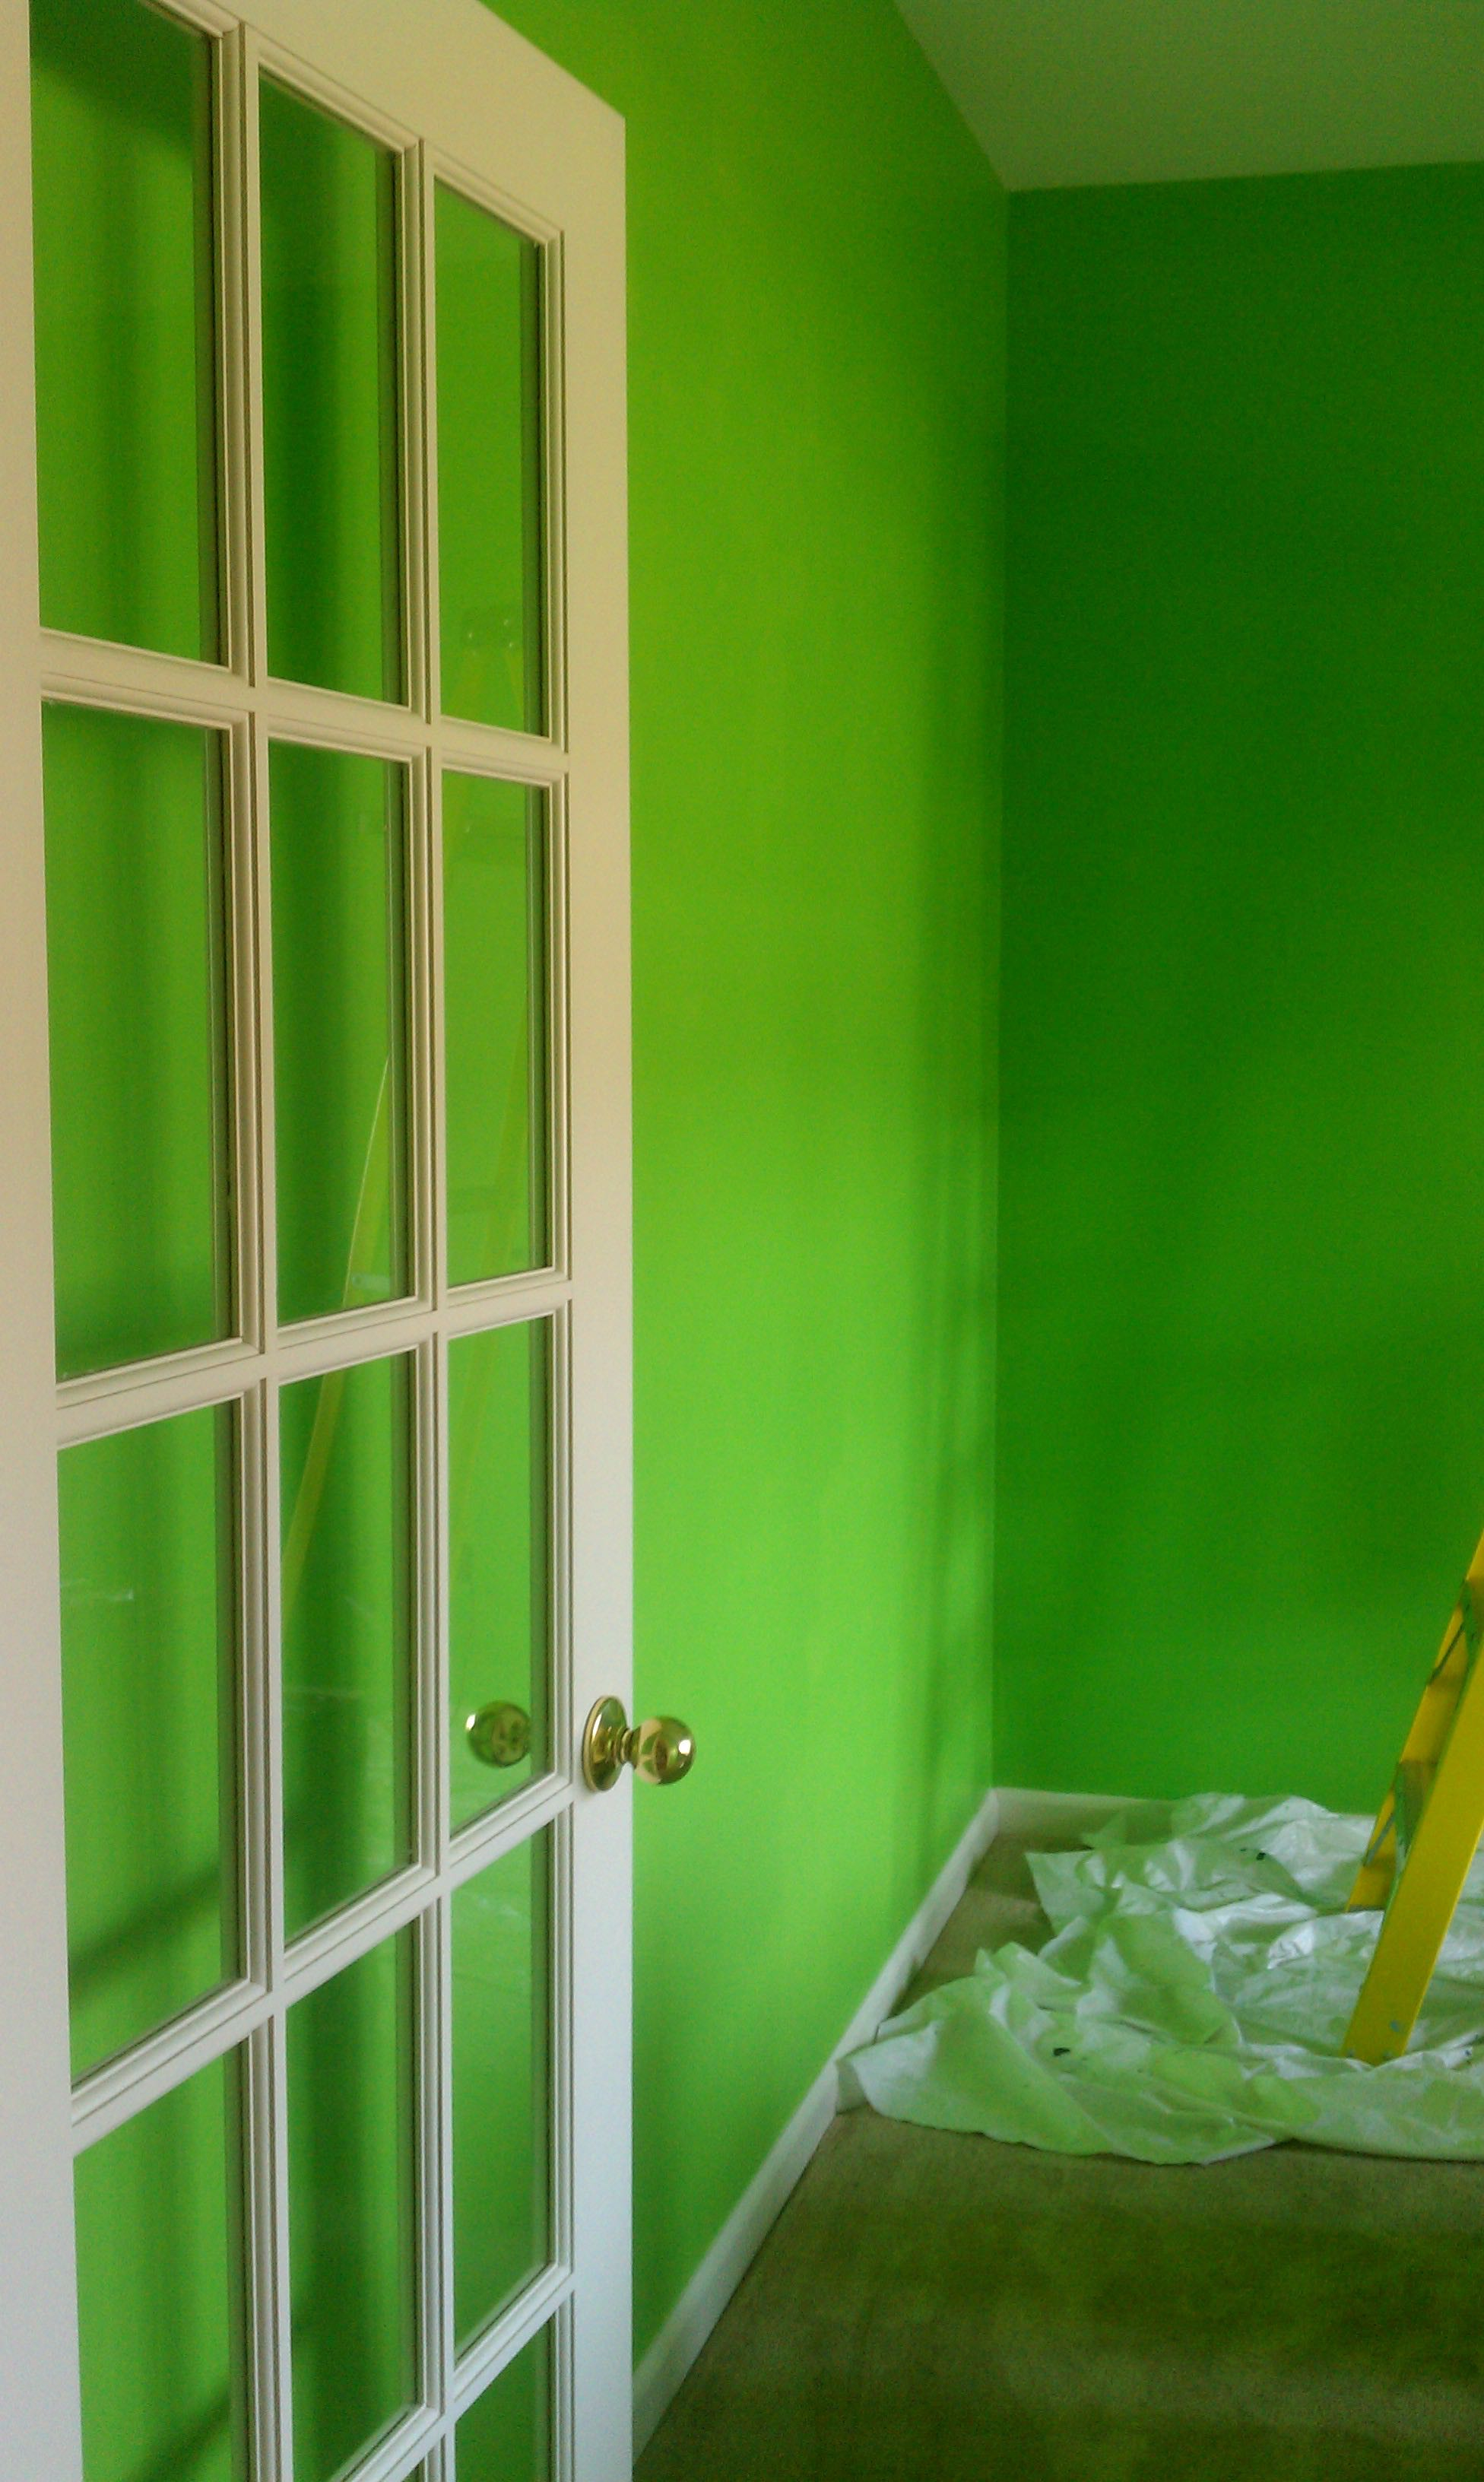 Painting the Space in a Bright, Energizing Green - {My Bright Former Office / Play Room}